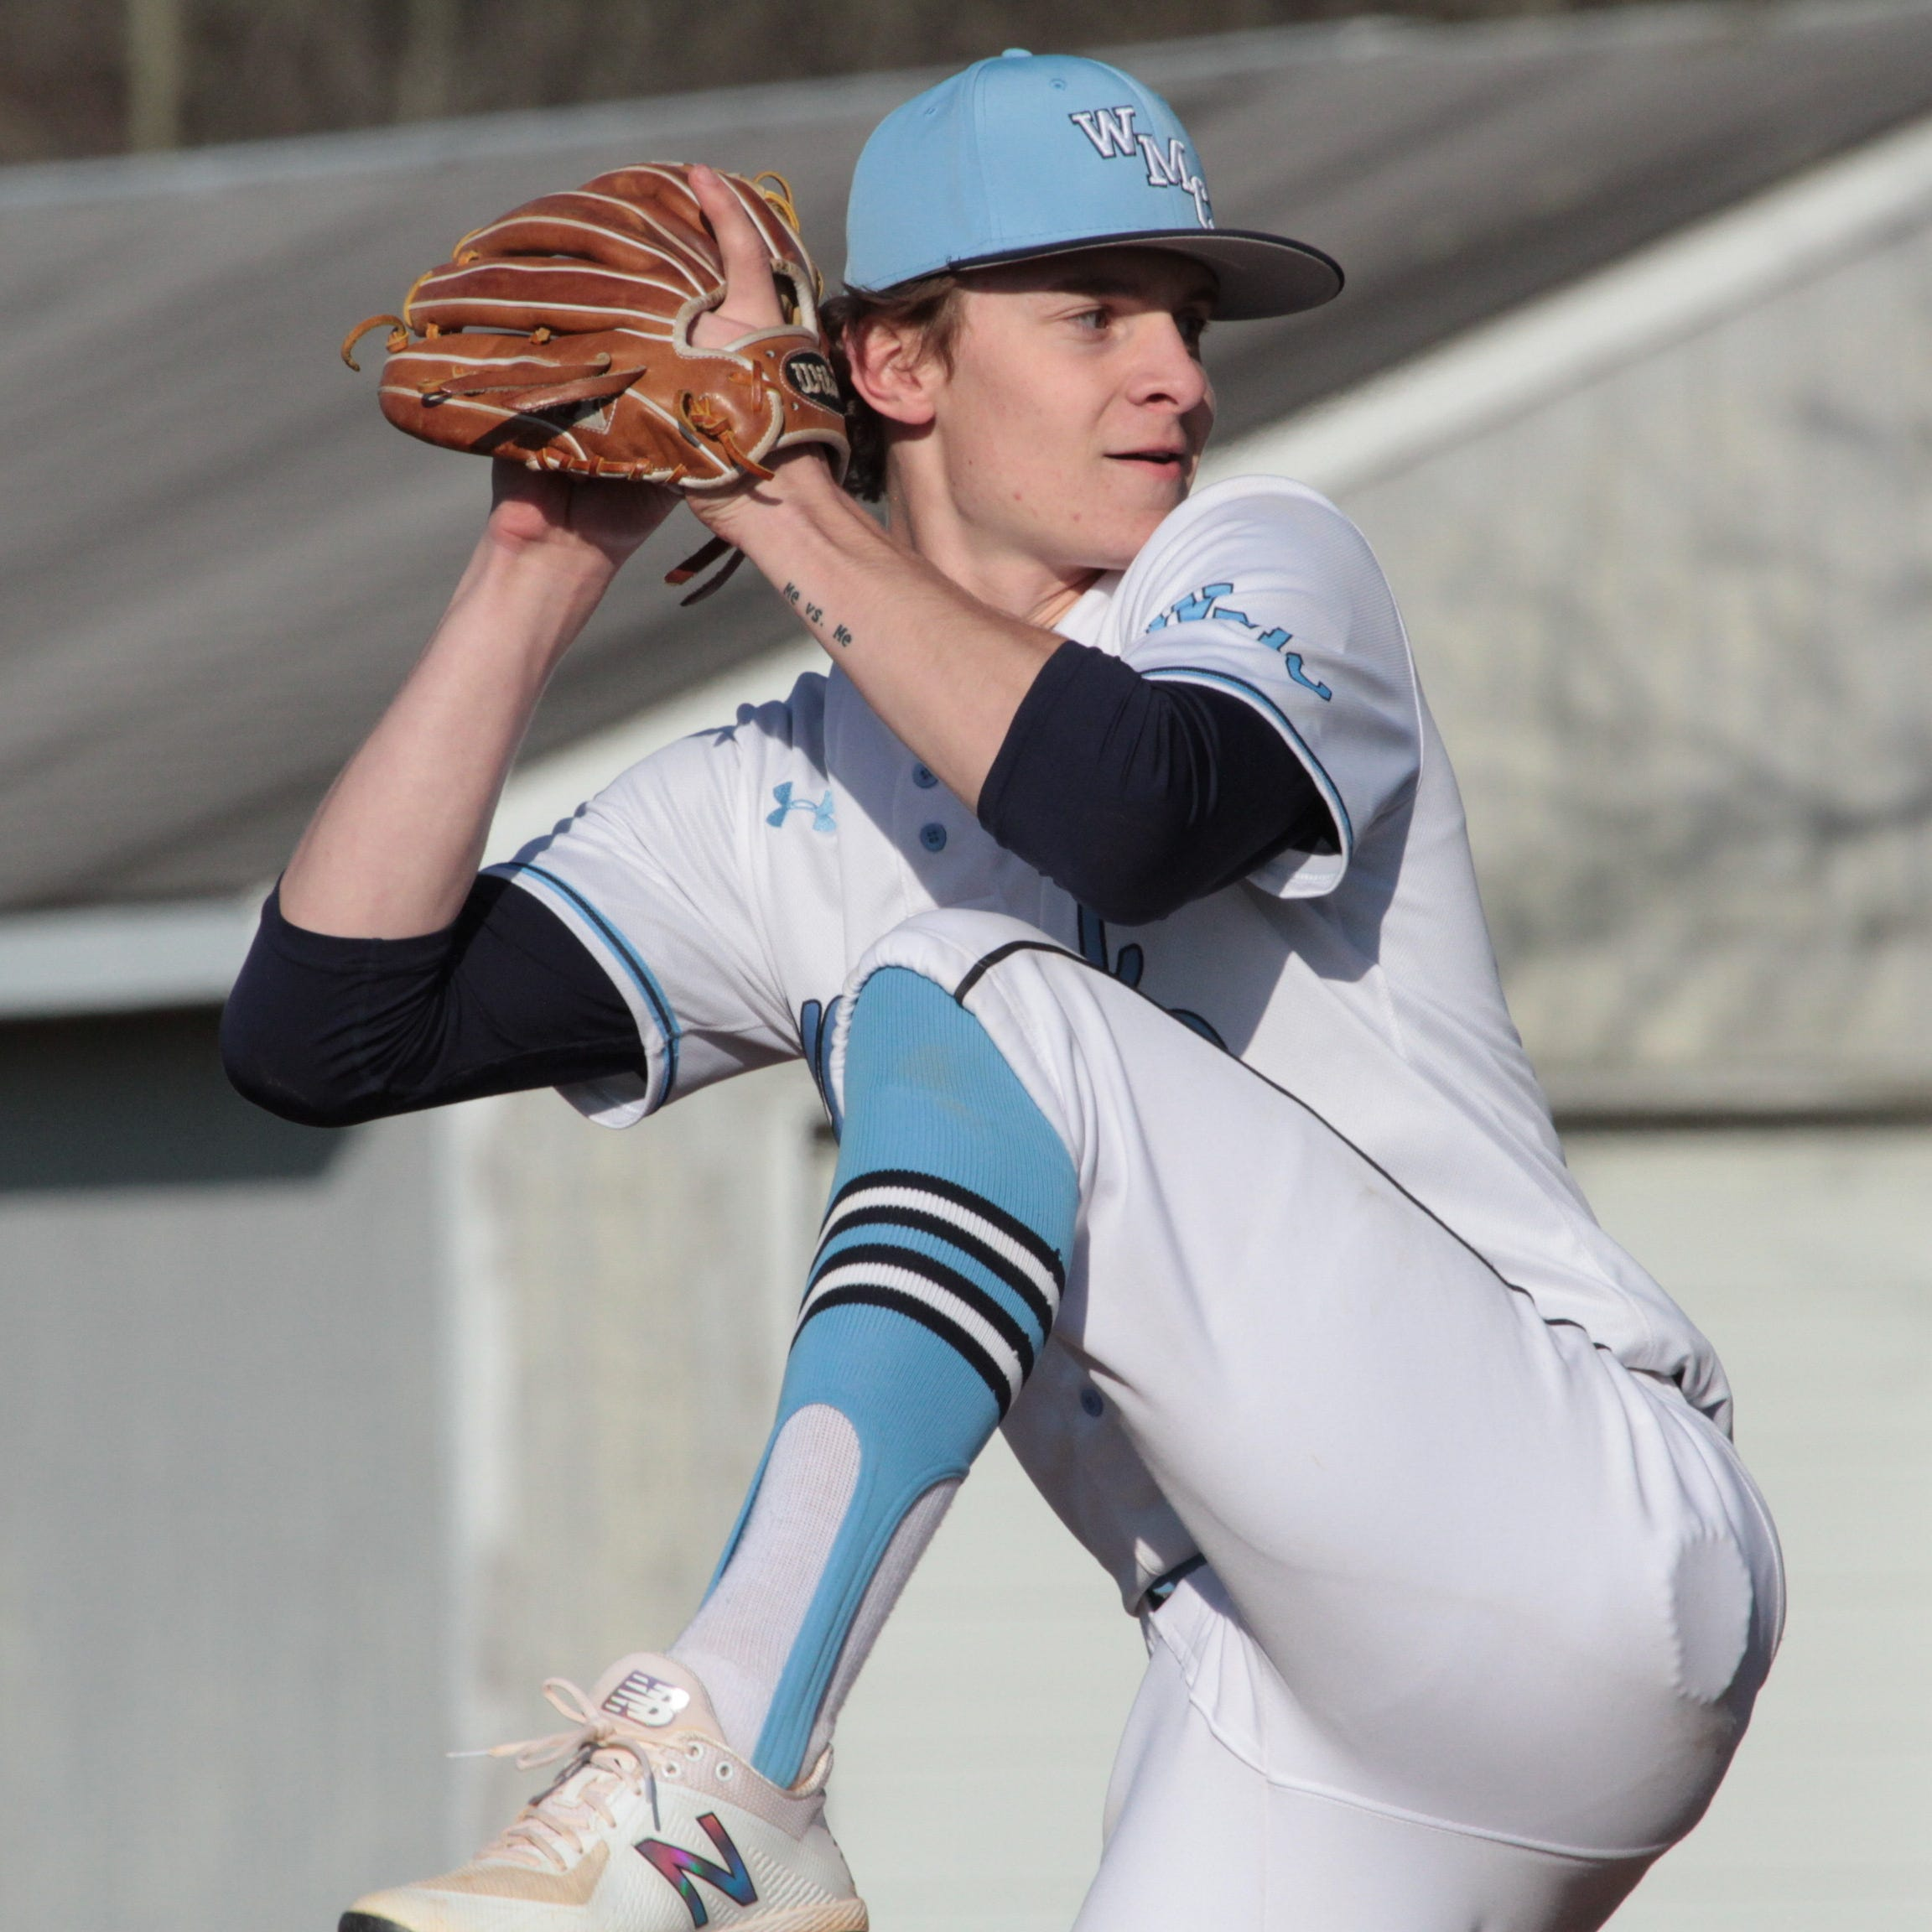 Tourette syndrome no barrier for 'relentless' West Morris pitcher